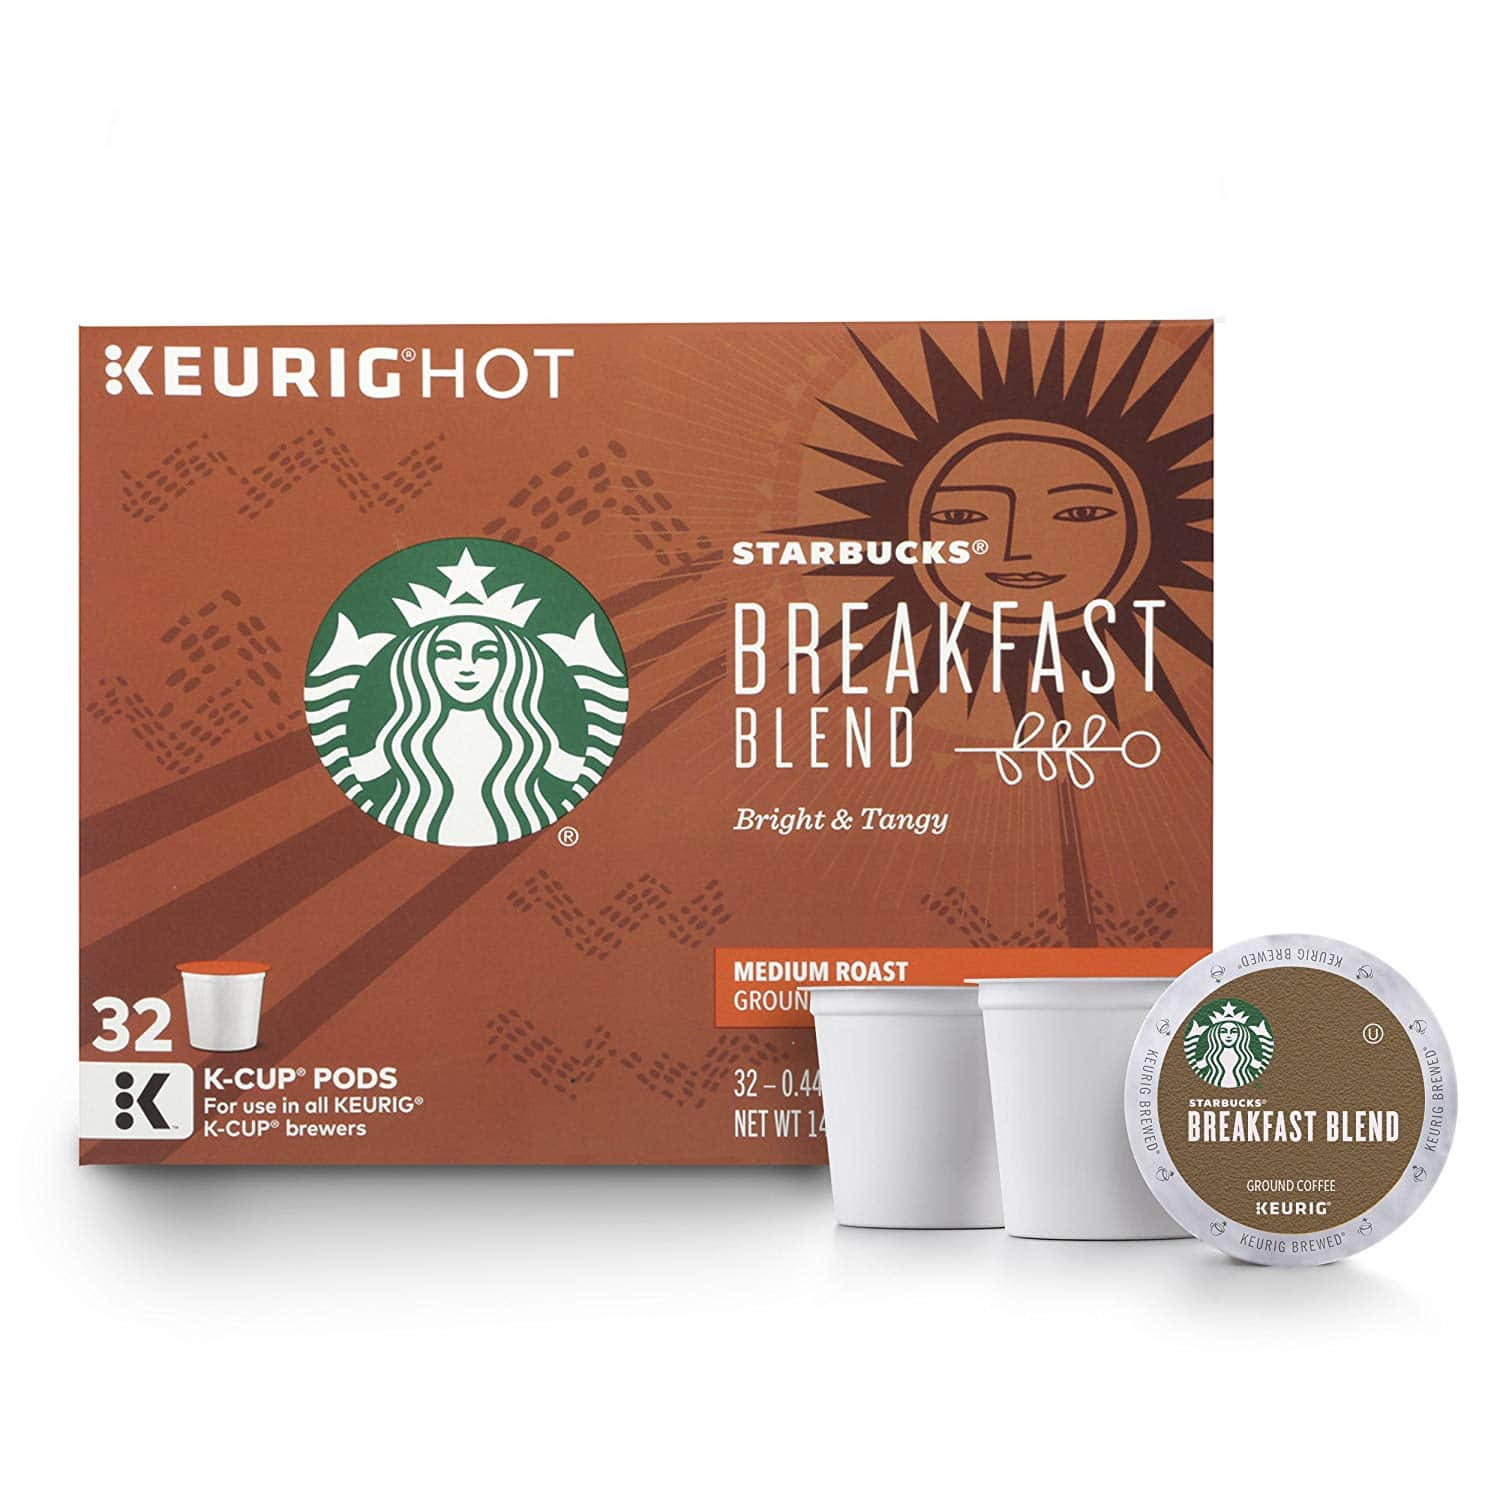 32-Count Starbucks Medium Roast K-Cup Coffee Pods (Breakfast Blend) $3.80 w/ S&S + Free S&H